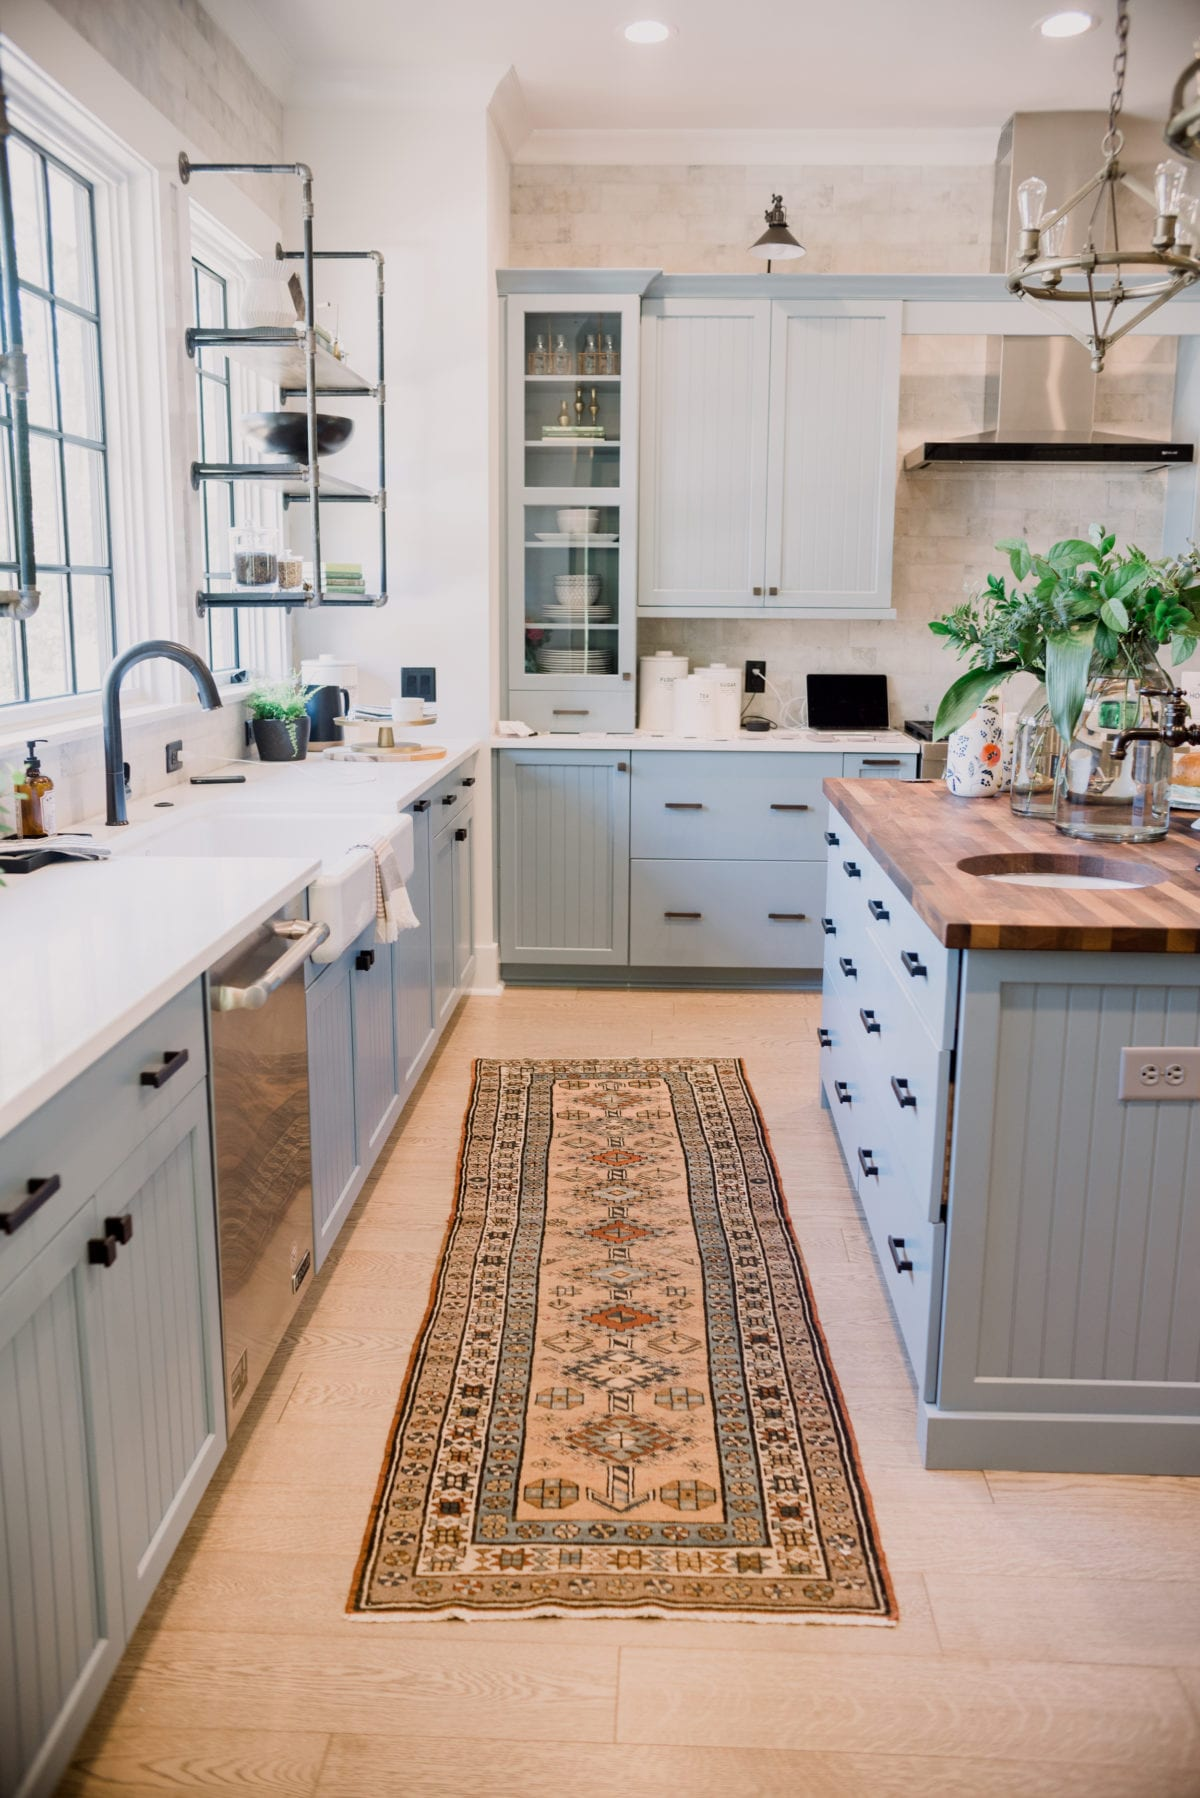 Modern Kitchen Design Elements Recreate This Modern Southern Kitchen In Your Home Without A Major